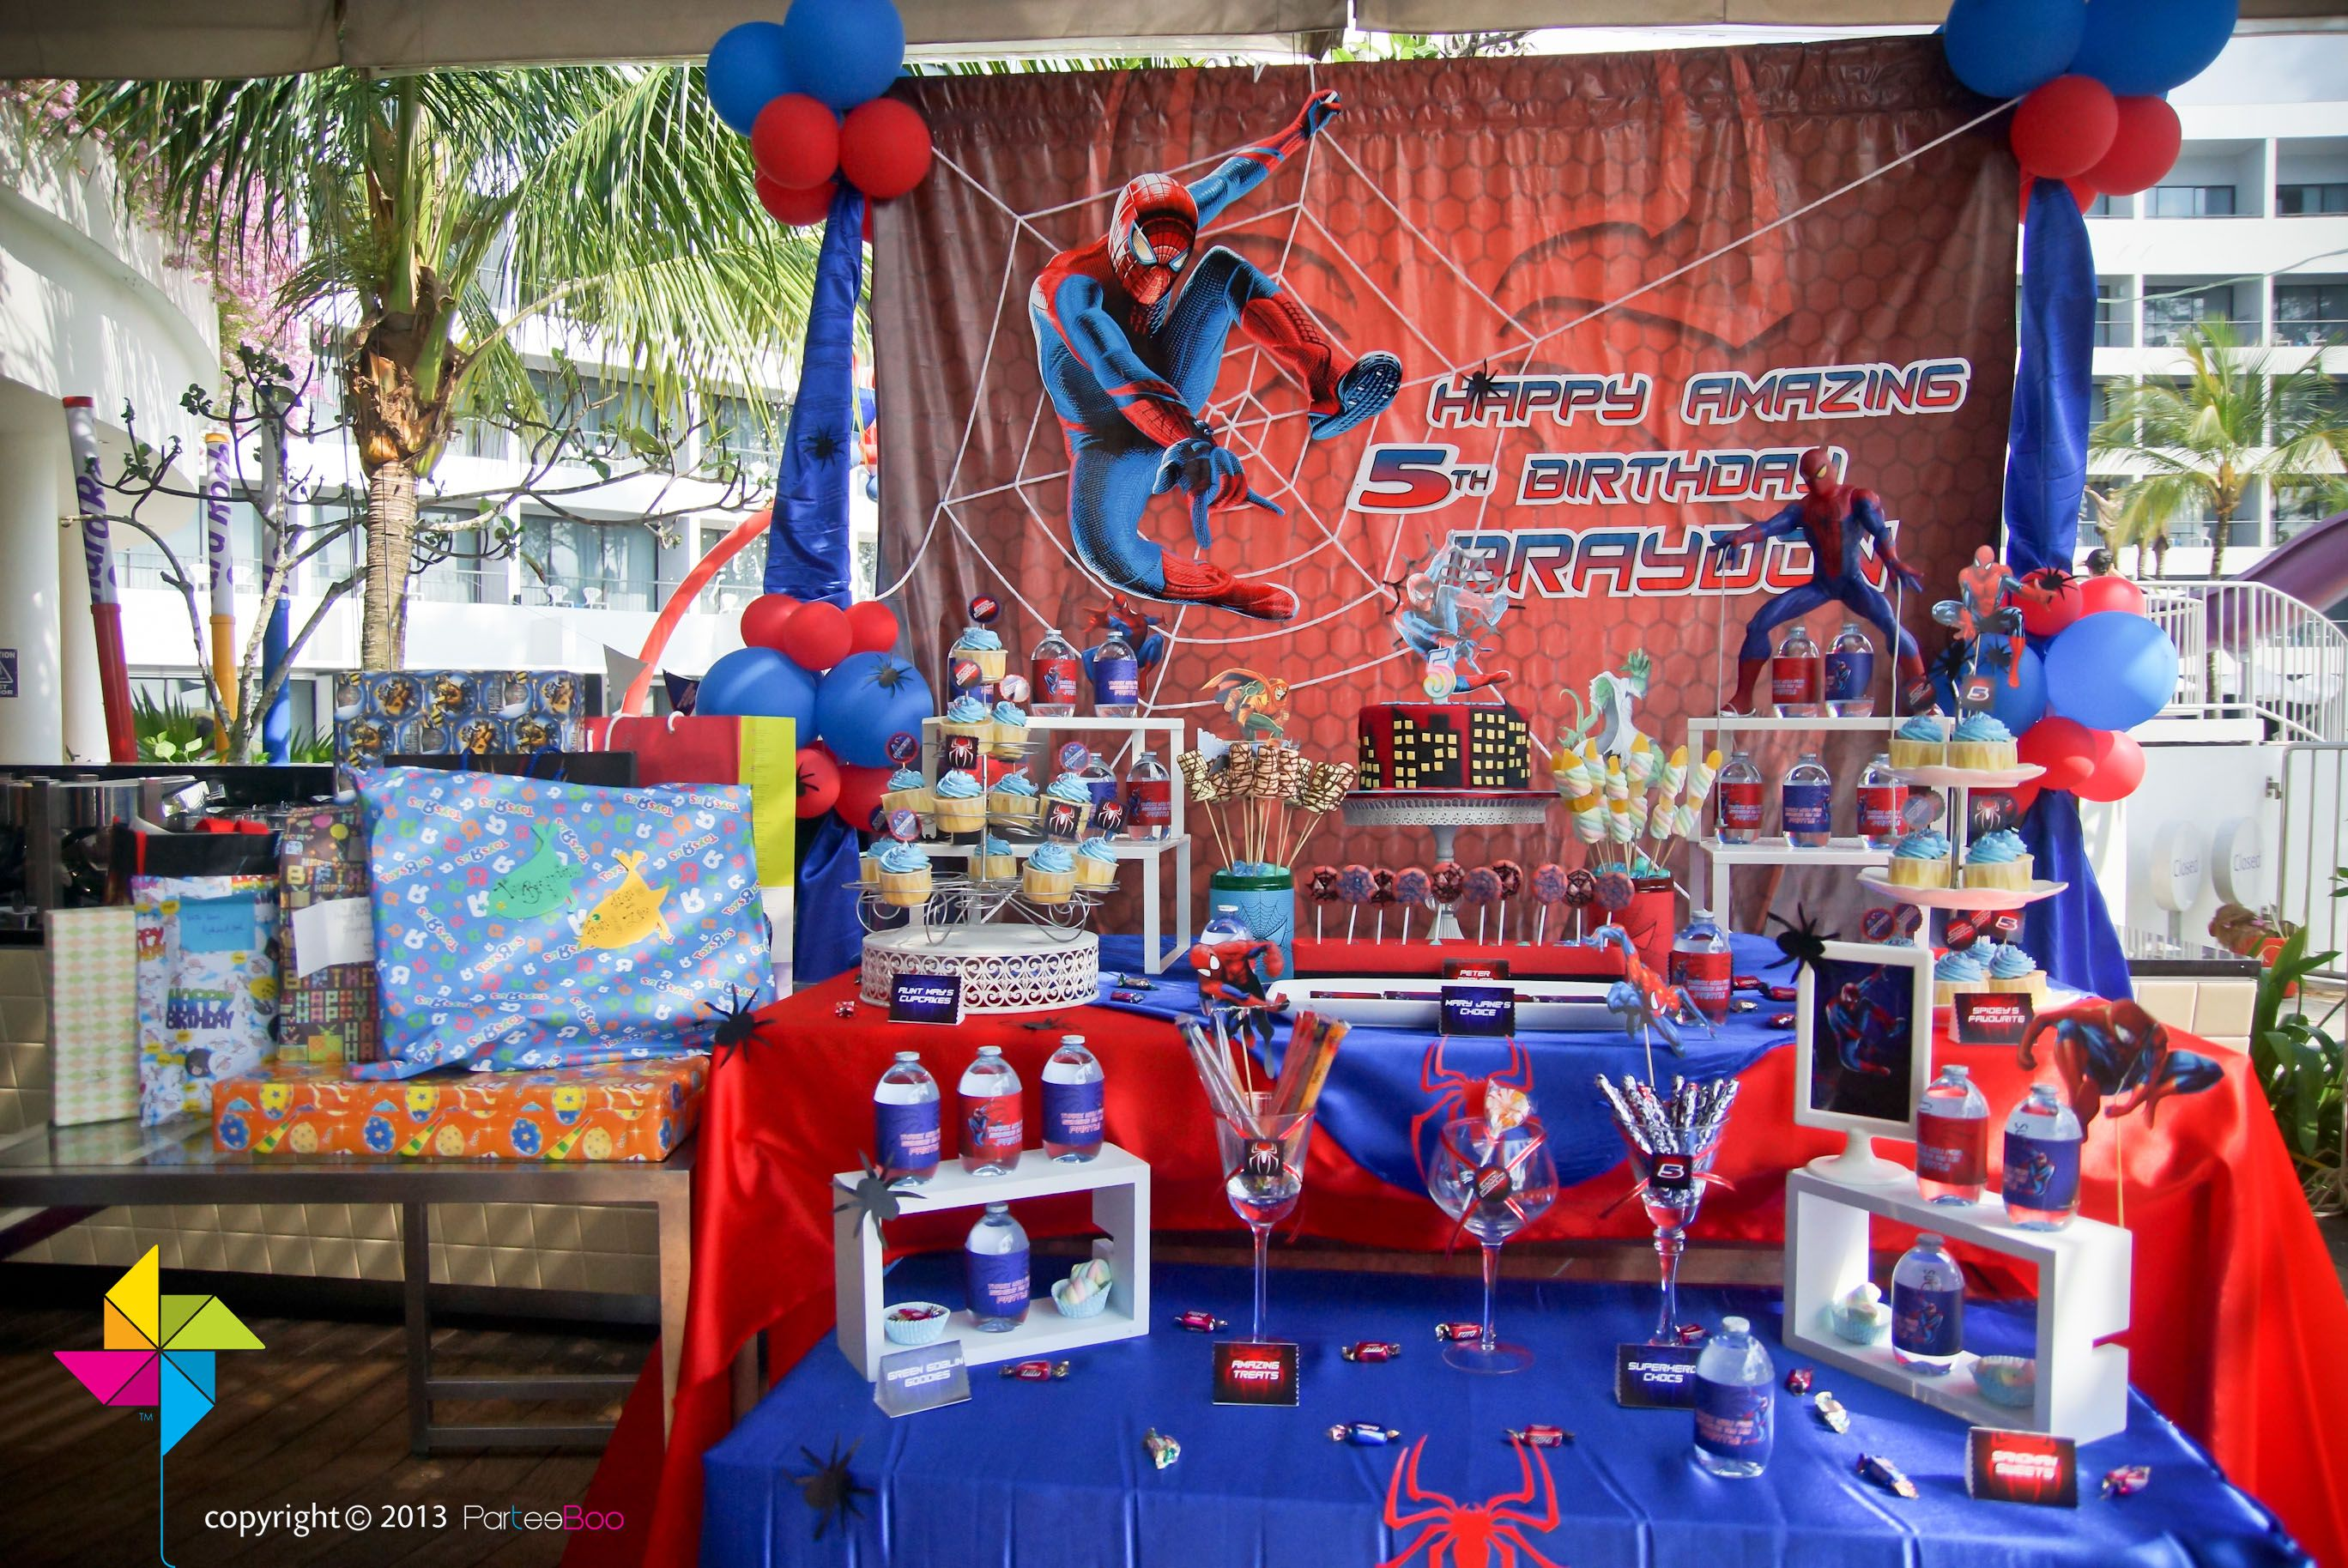 Backdrop and cake / candy table for a SpiderMan themed